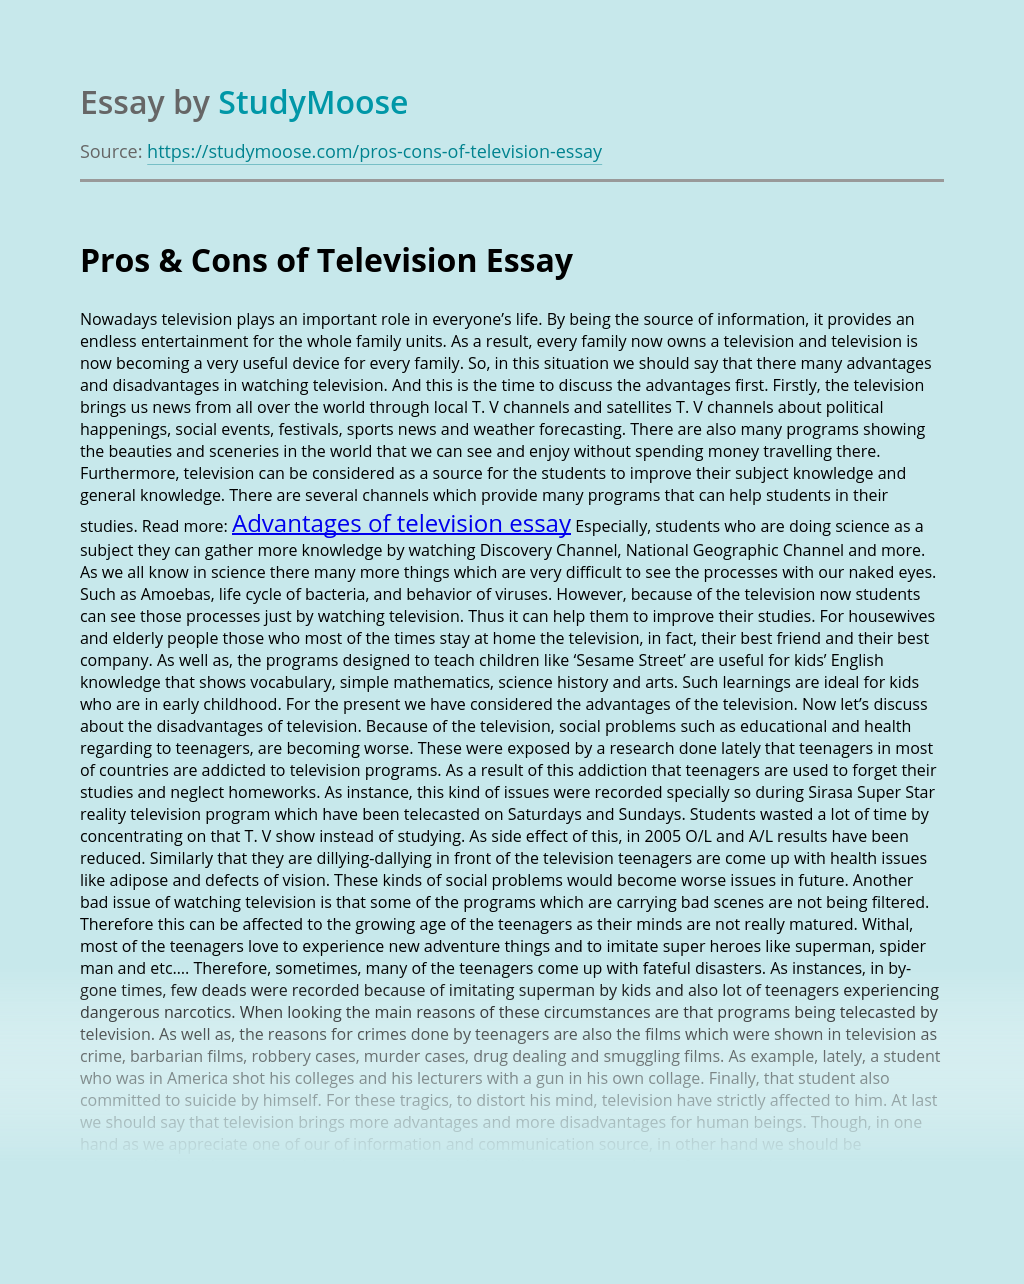 Pros & Cons of Television